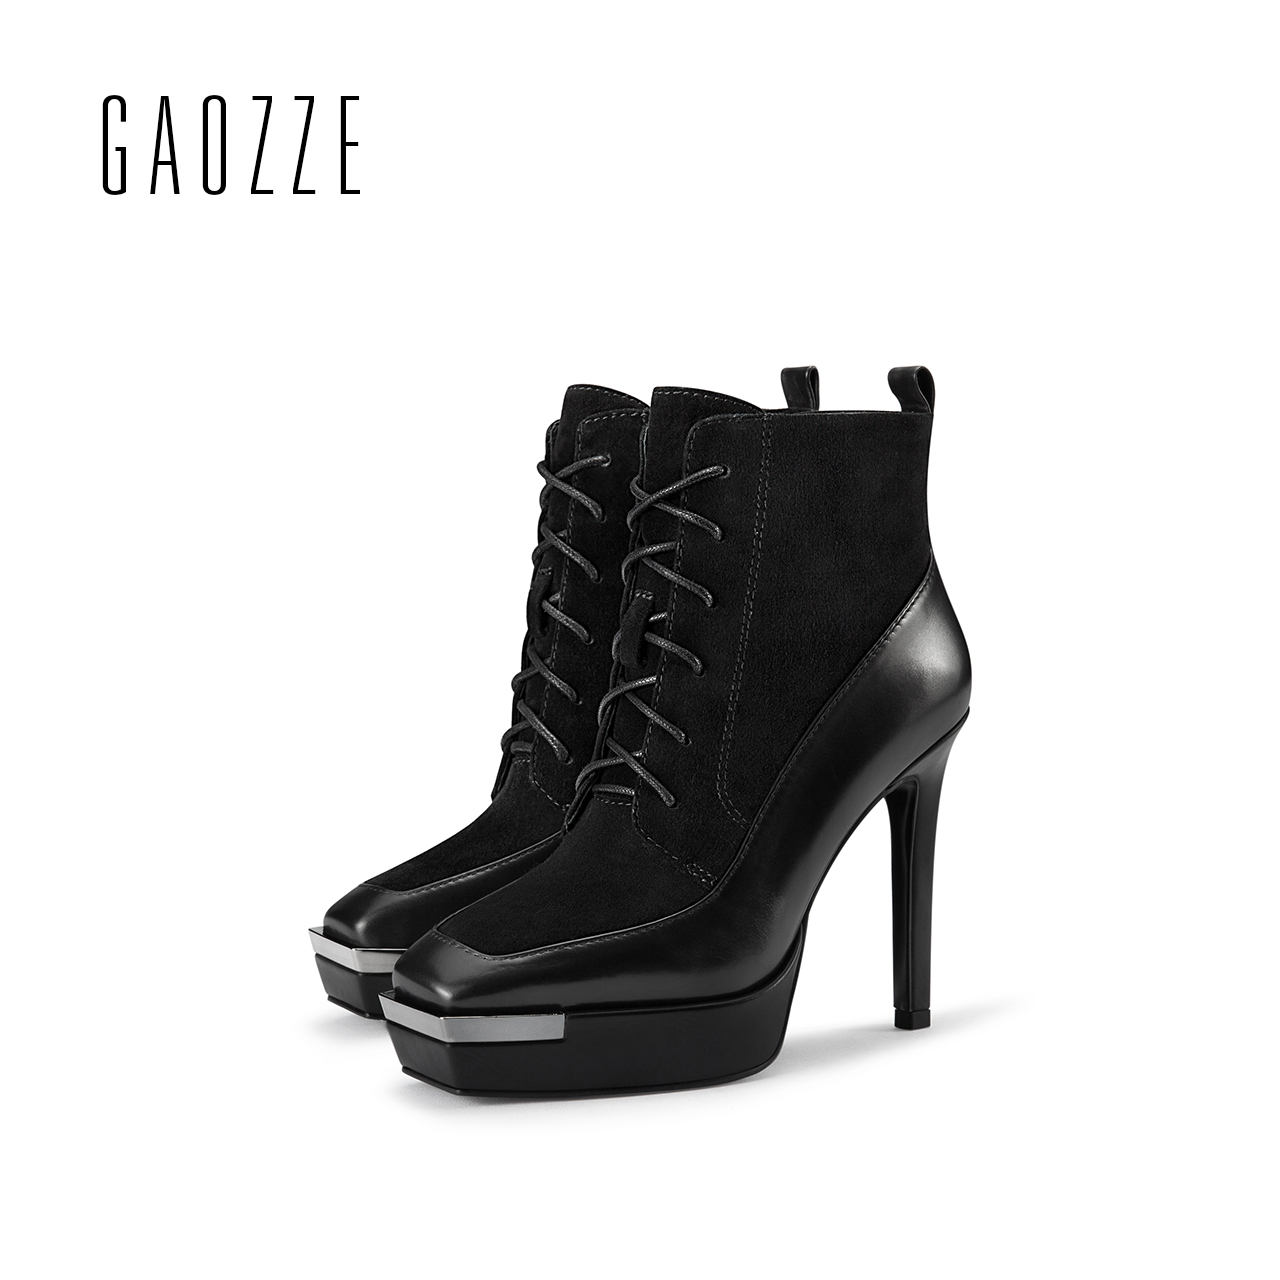 Genuine Leather boots women 2017 autumn winter new square head platform high-heeled ankle boots female side zipper Thin heel autumn and winter new personality retro cowhide ankle boots handsome female waterproof platform genuine leather women shoes 9731